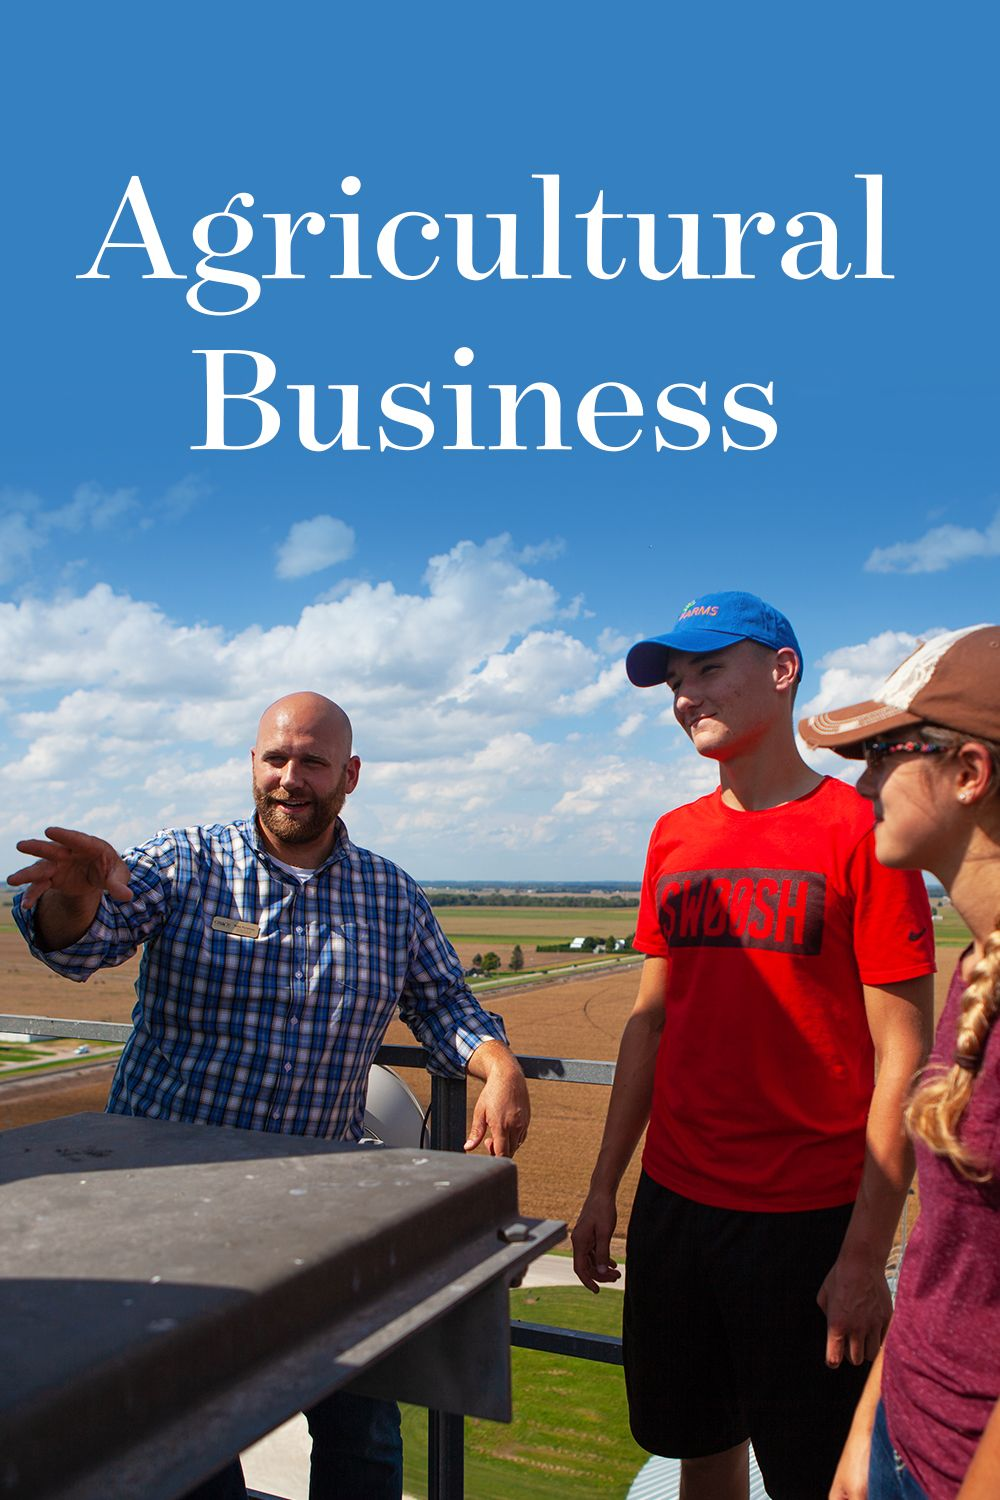 Agricultural Business Major Grace College School of